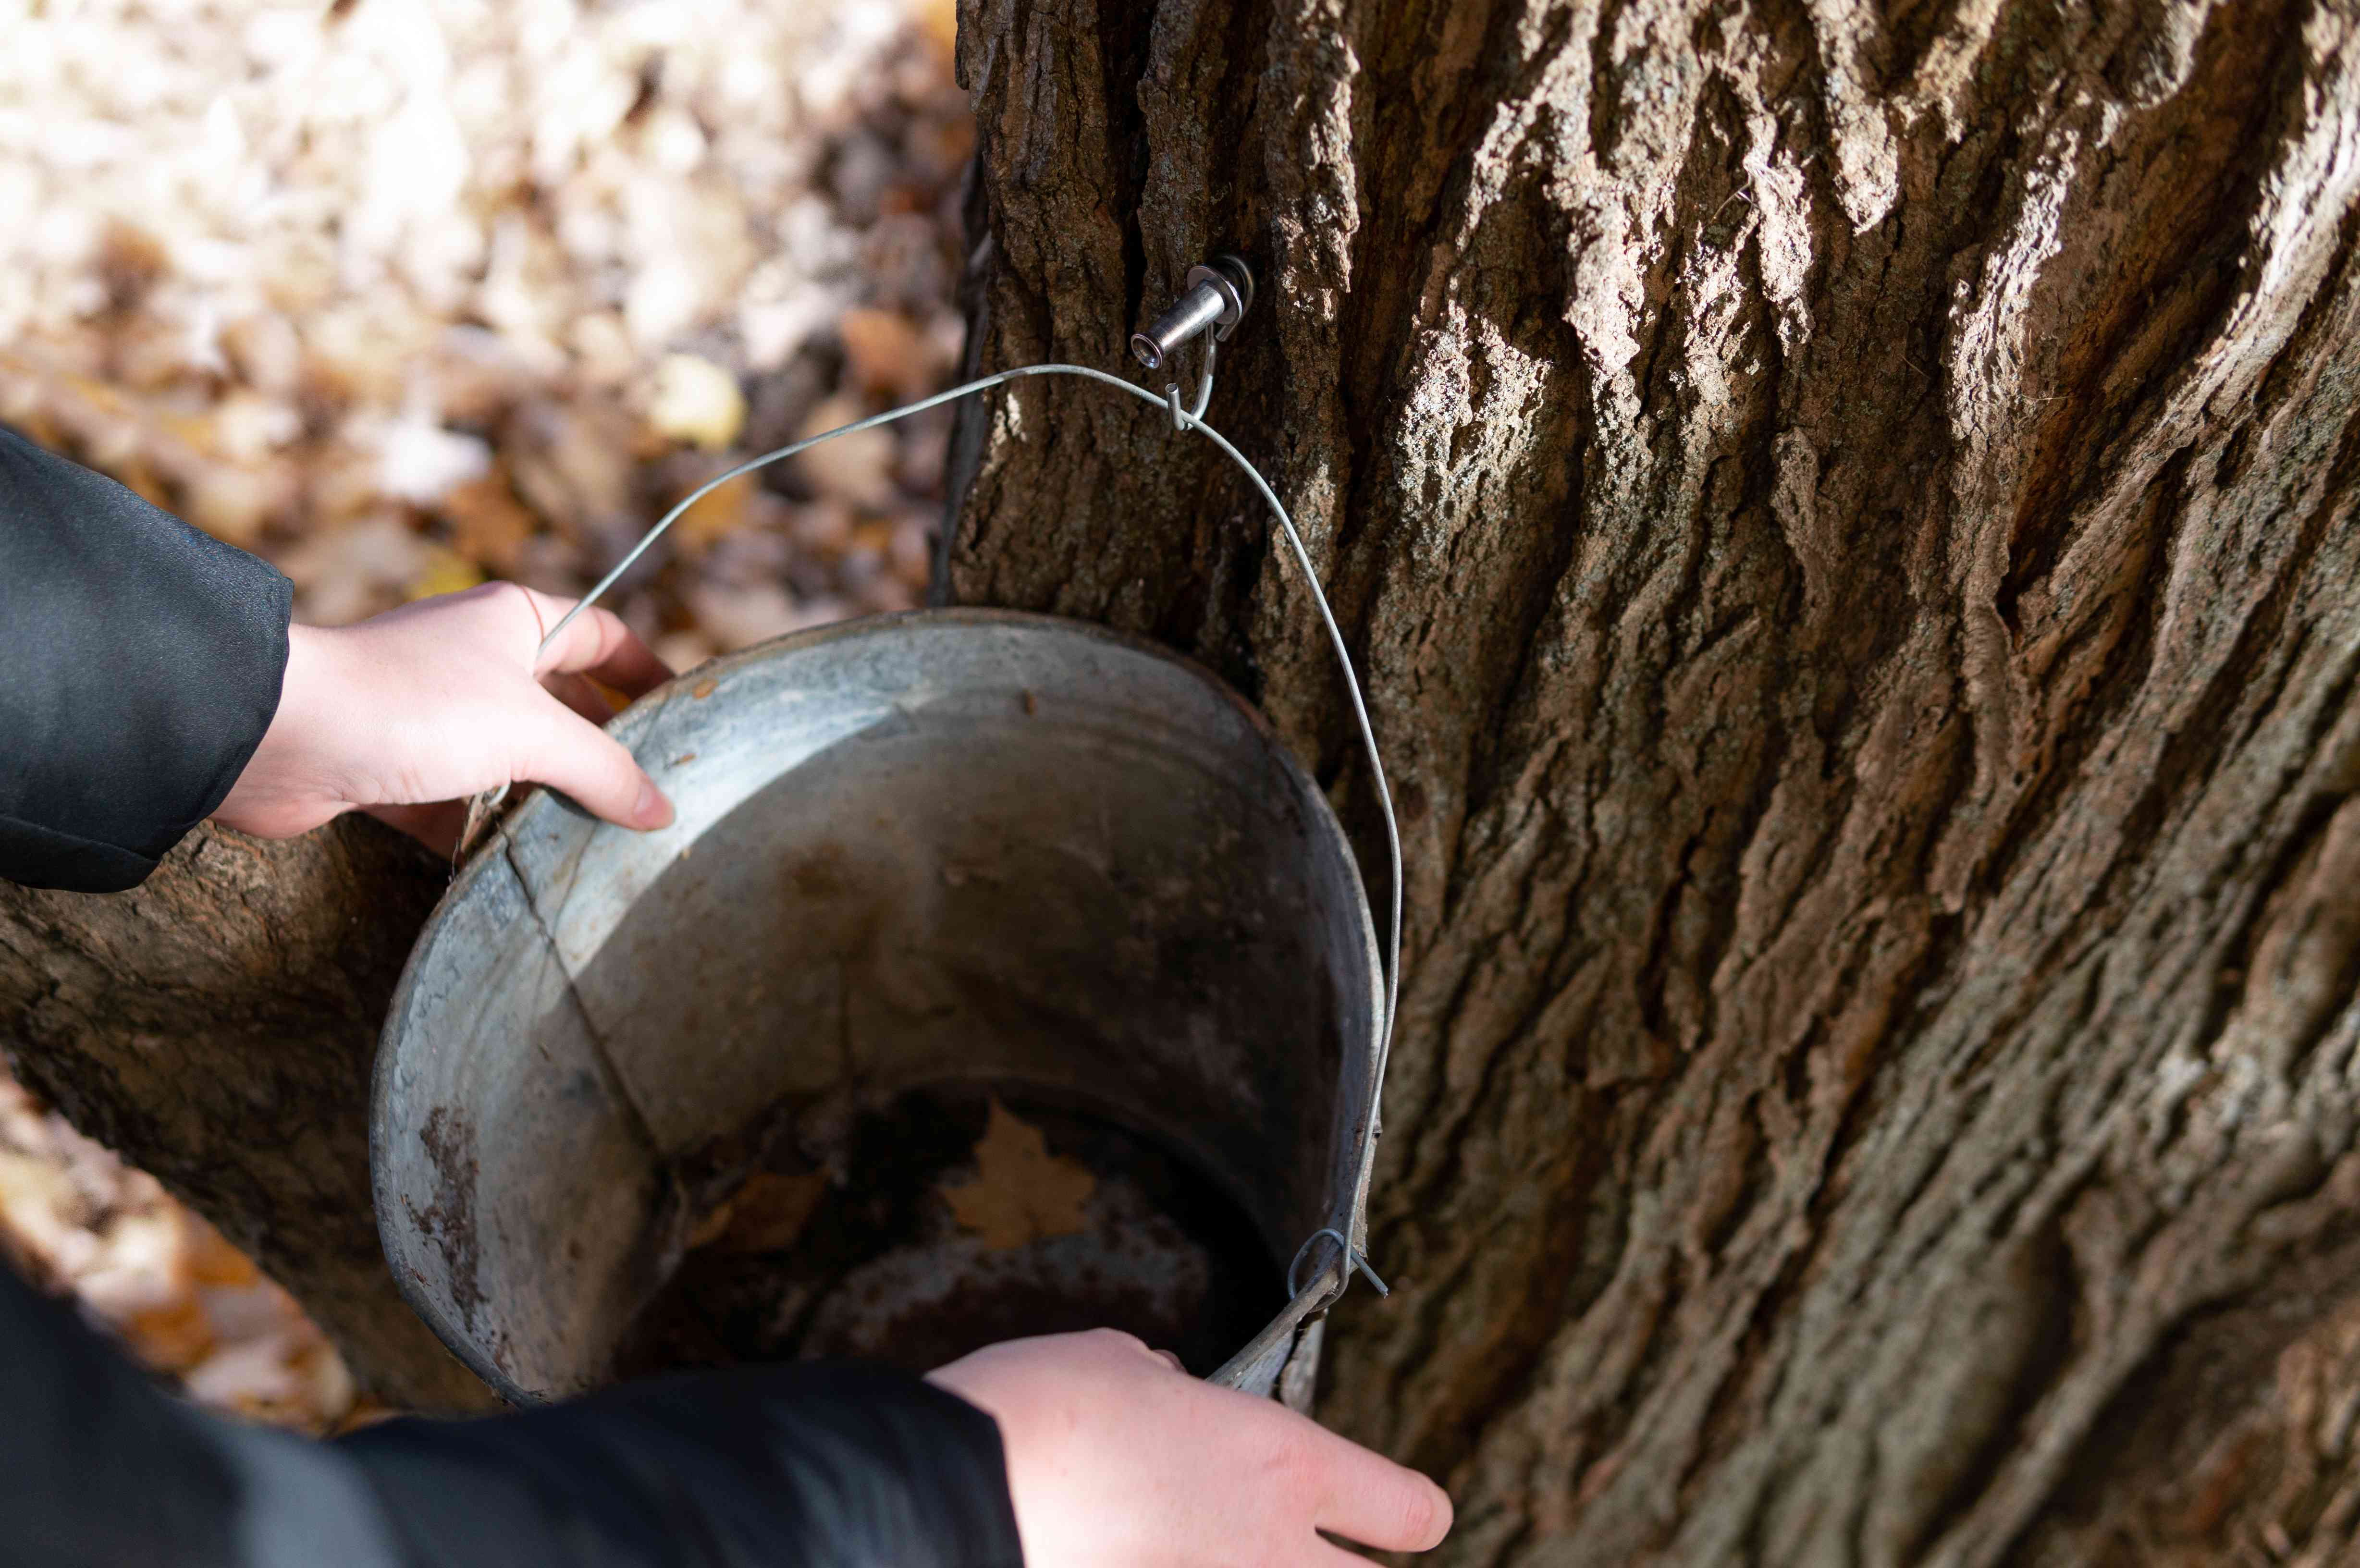 hands hold bucket under tree for sap